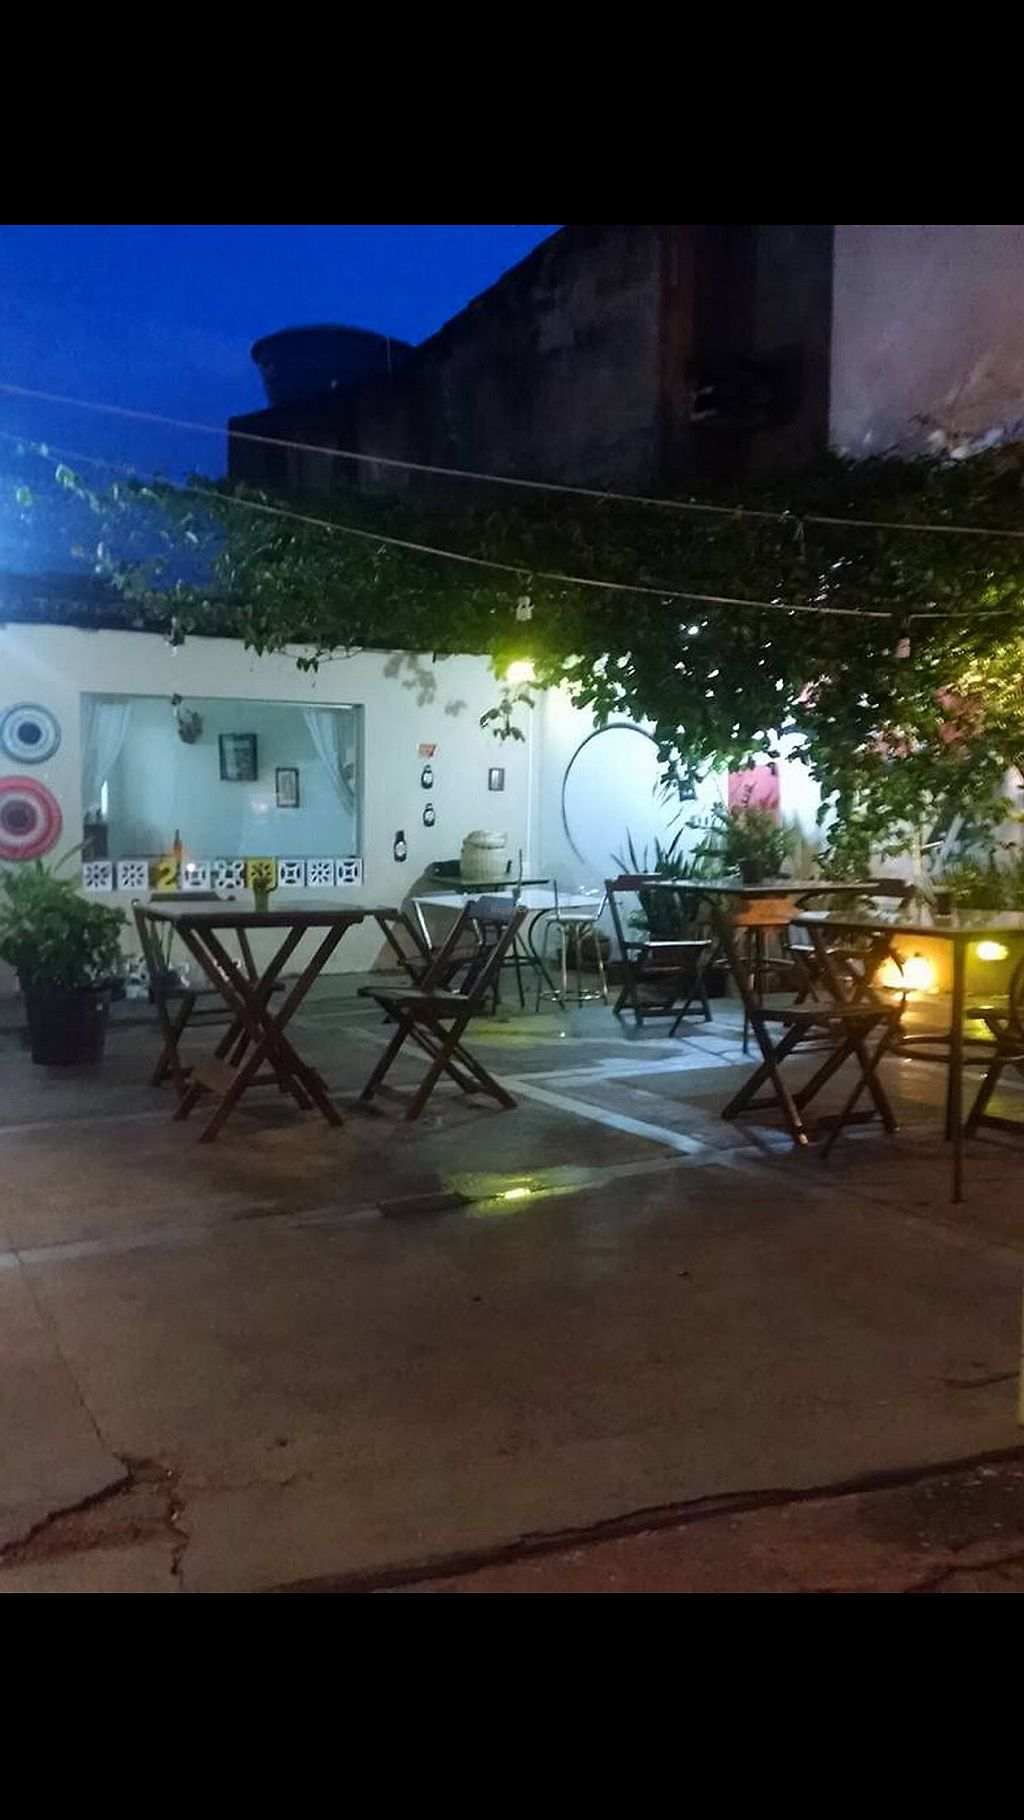 """Photo of Gran Bazar Pac  by <a href=""""/members/profile/PedroFelipe"""">PedroFelipe</a> <br/>outdoor <br/> July 24, 2017  - <a href='/contact/abuse/image/96993/284351'>Report</a>"""